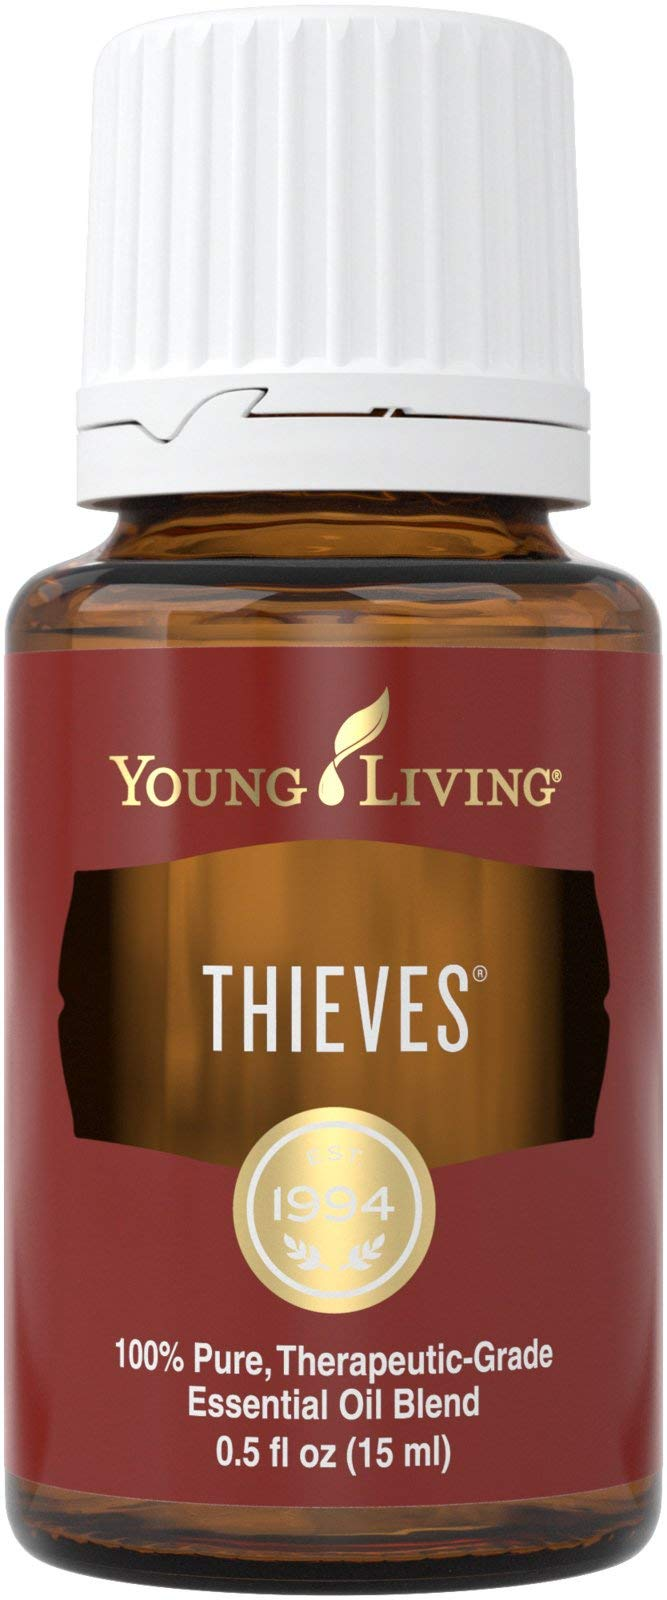 Young Living Thieves Essential Oil 15ml by Young Living